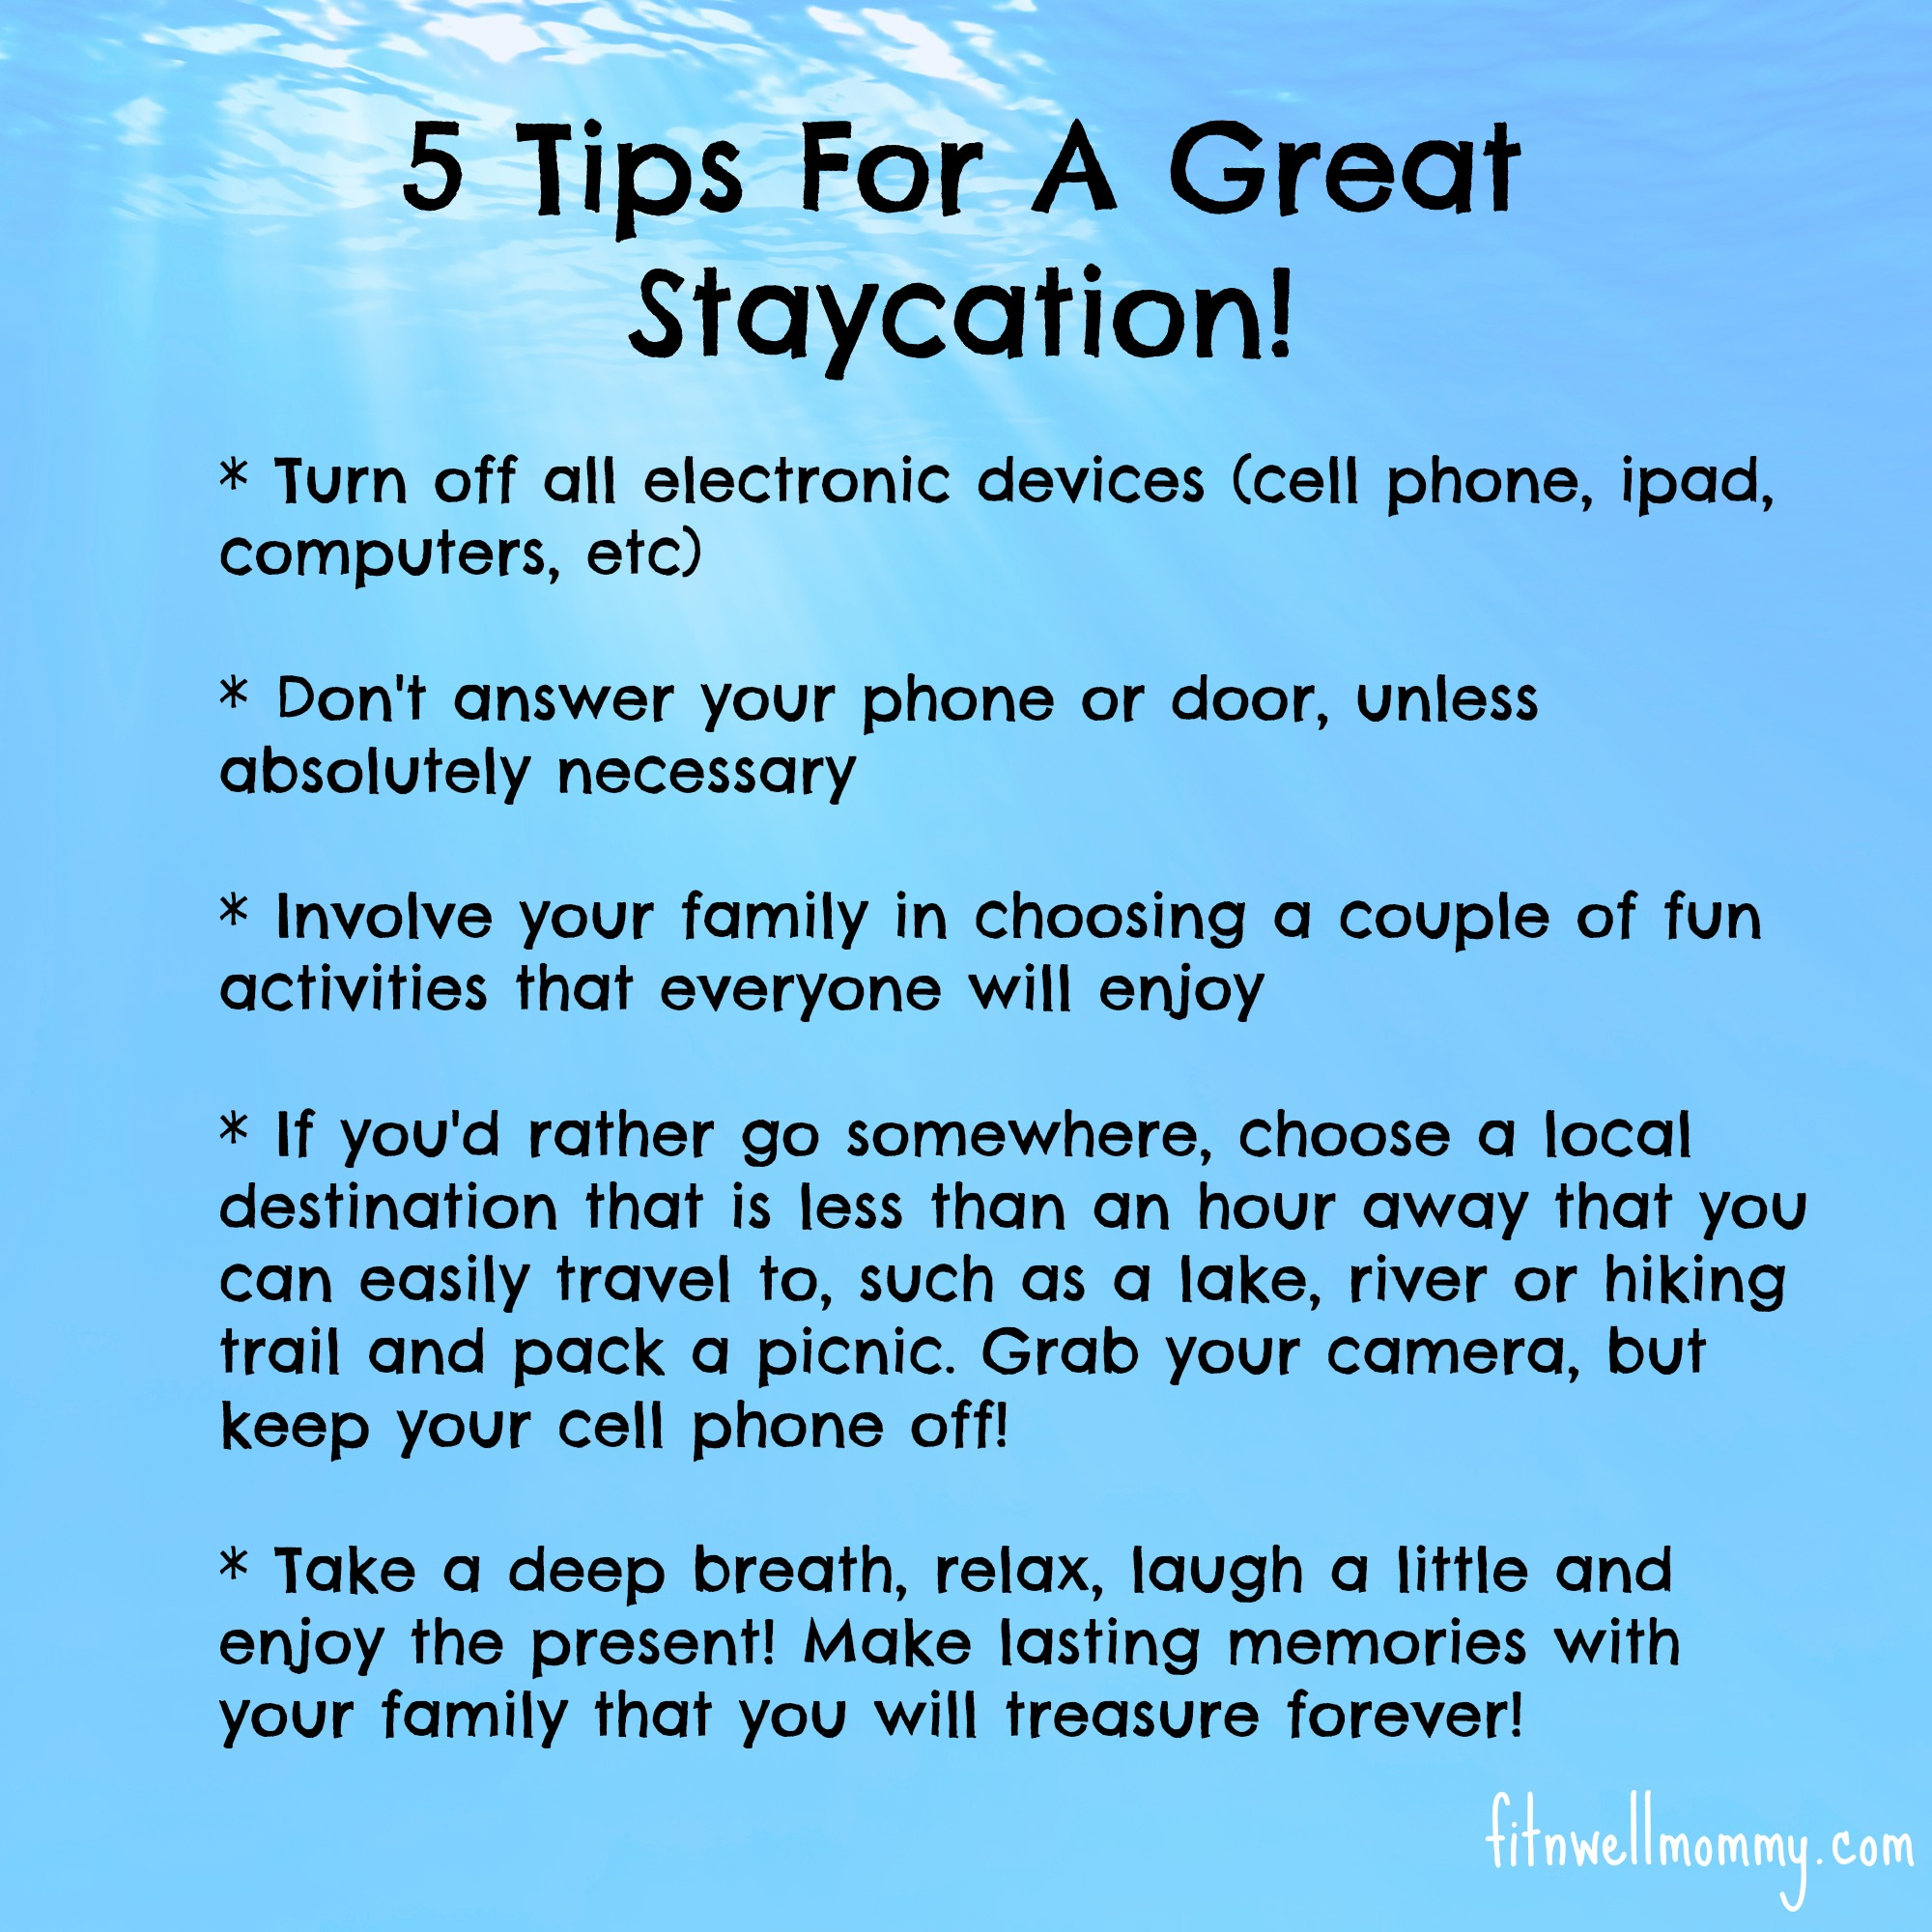 How to Have a Staycation